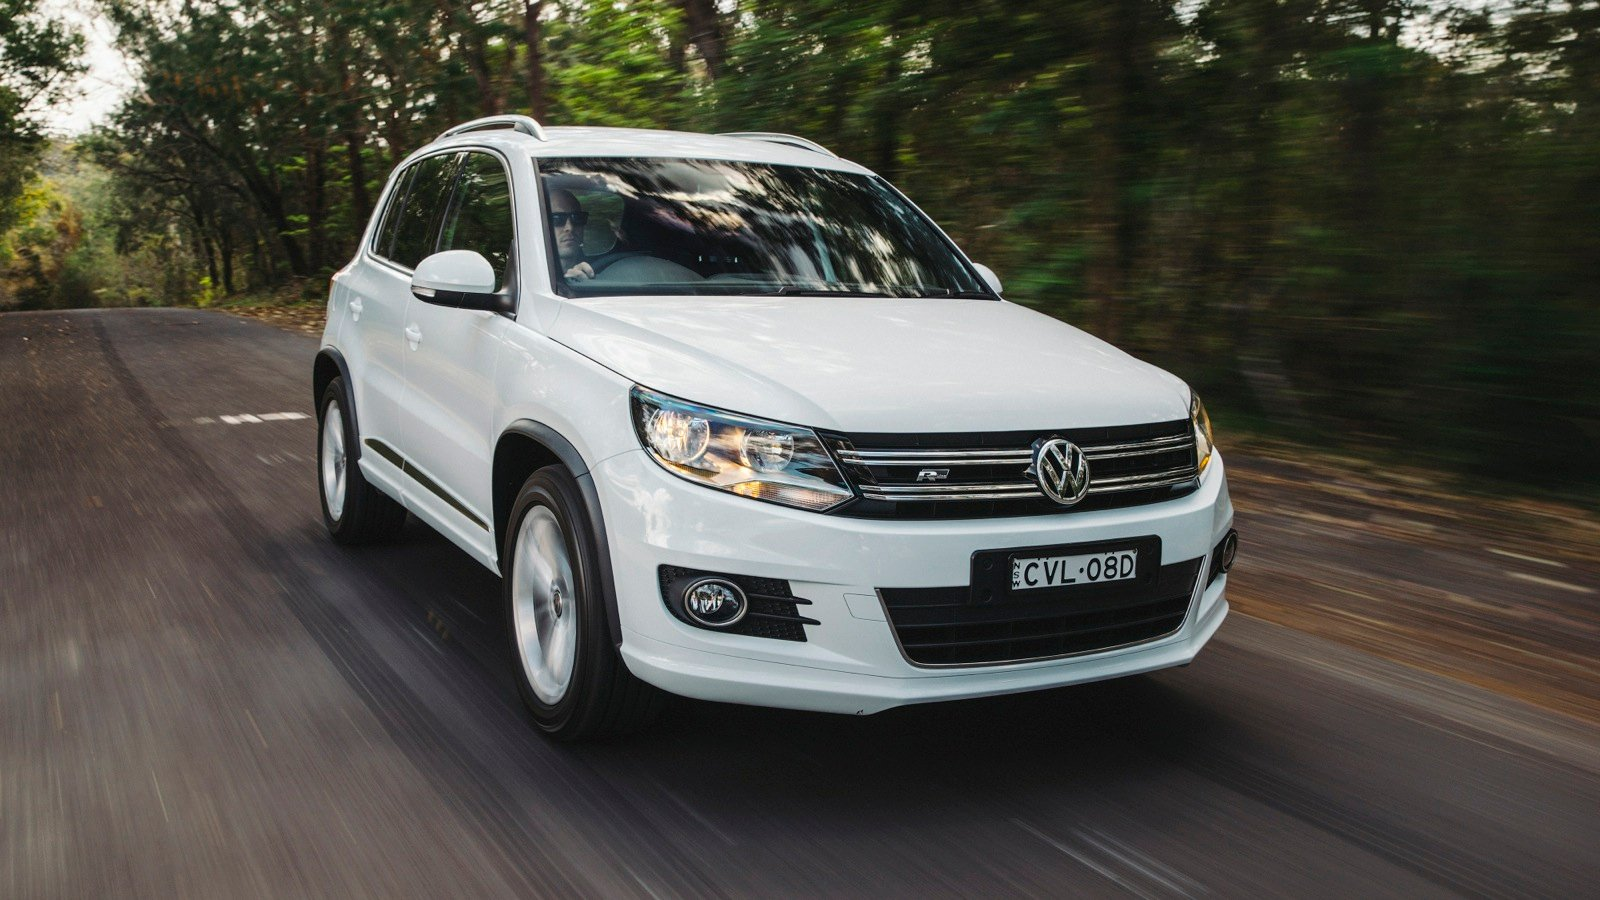 2017 volkswagen tiguan pricing and specifications photos autos post. Black Bedroom Furniture Sets. Home Design Ideas